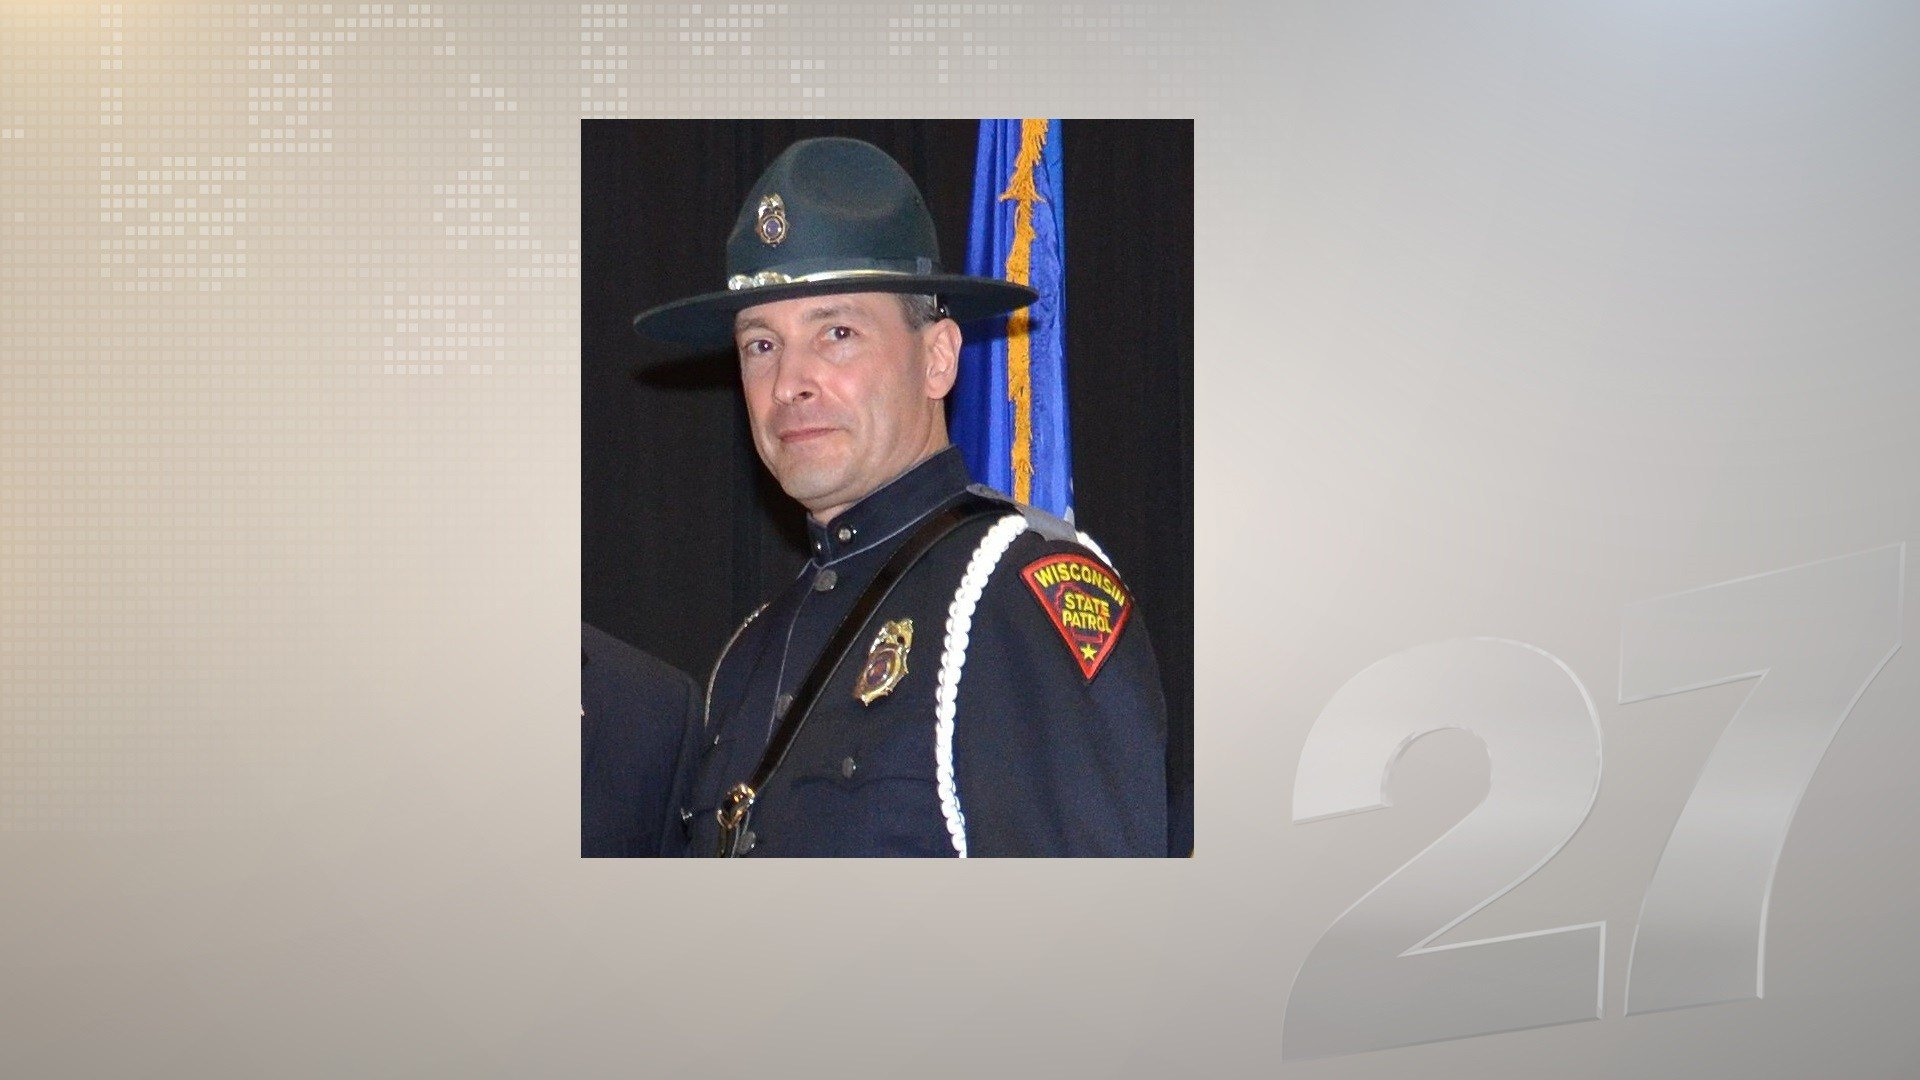 State trooper charged with possessing child pornography resigns